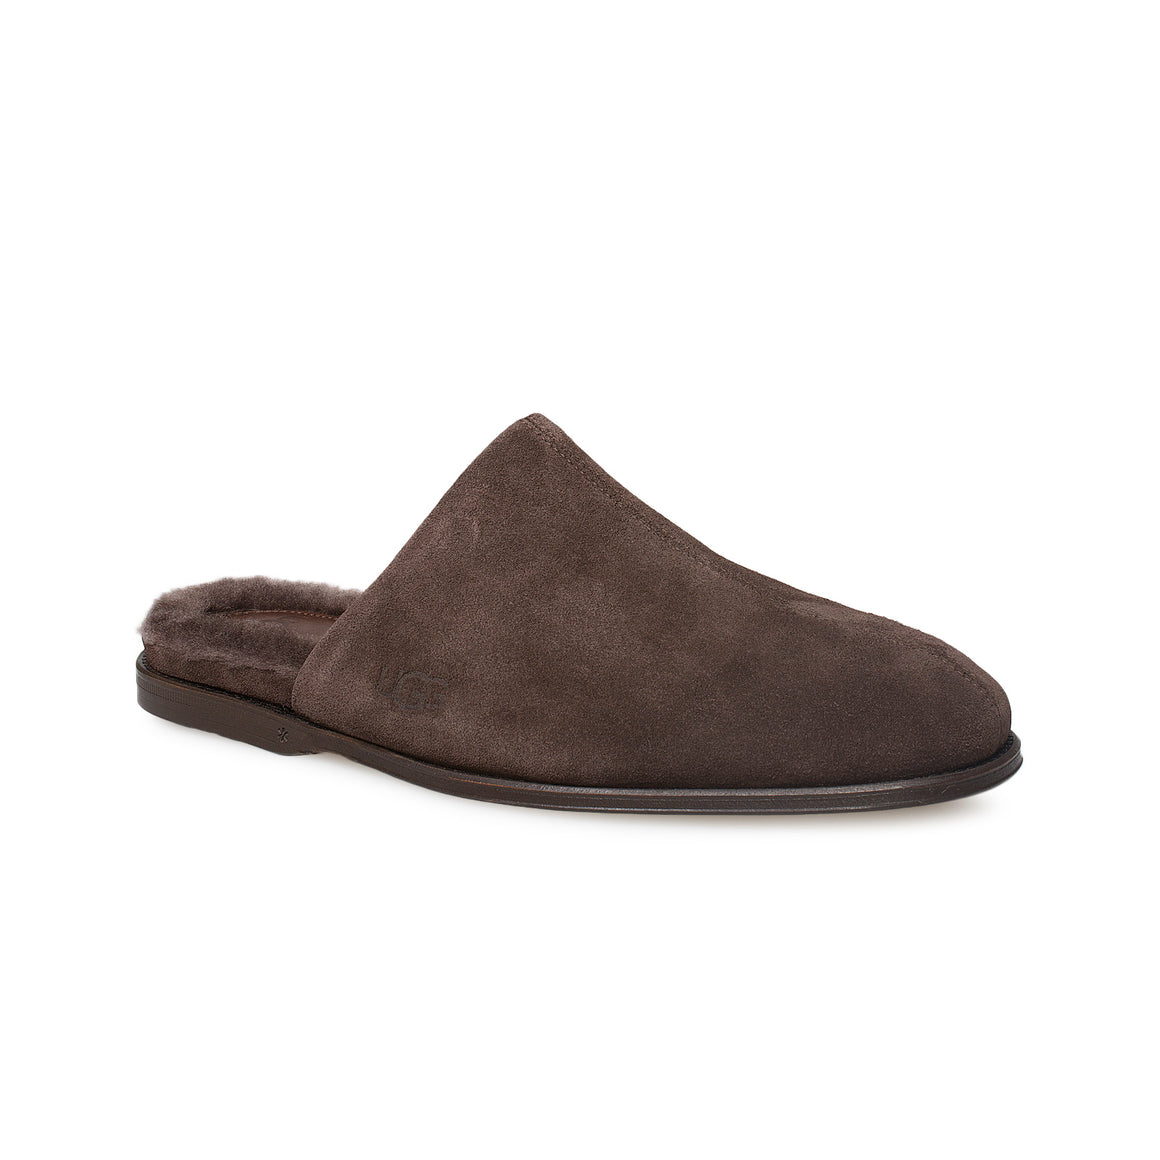 UGG Chateau Slip On Stout Slippers - Women's